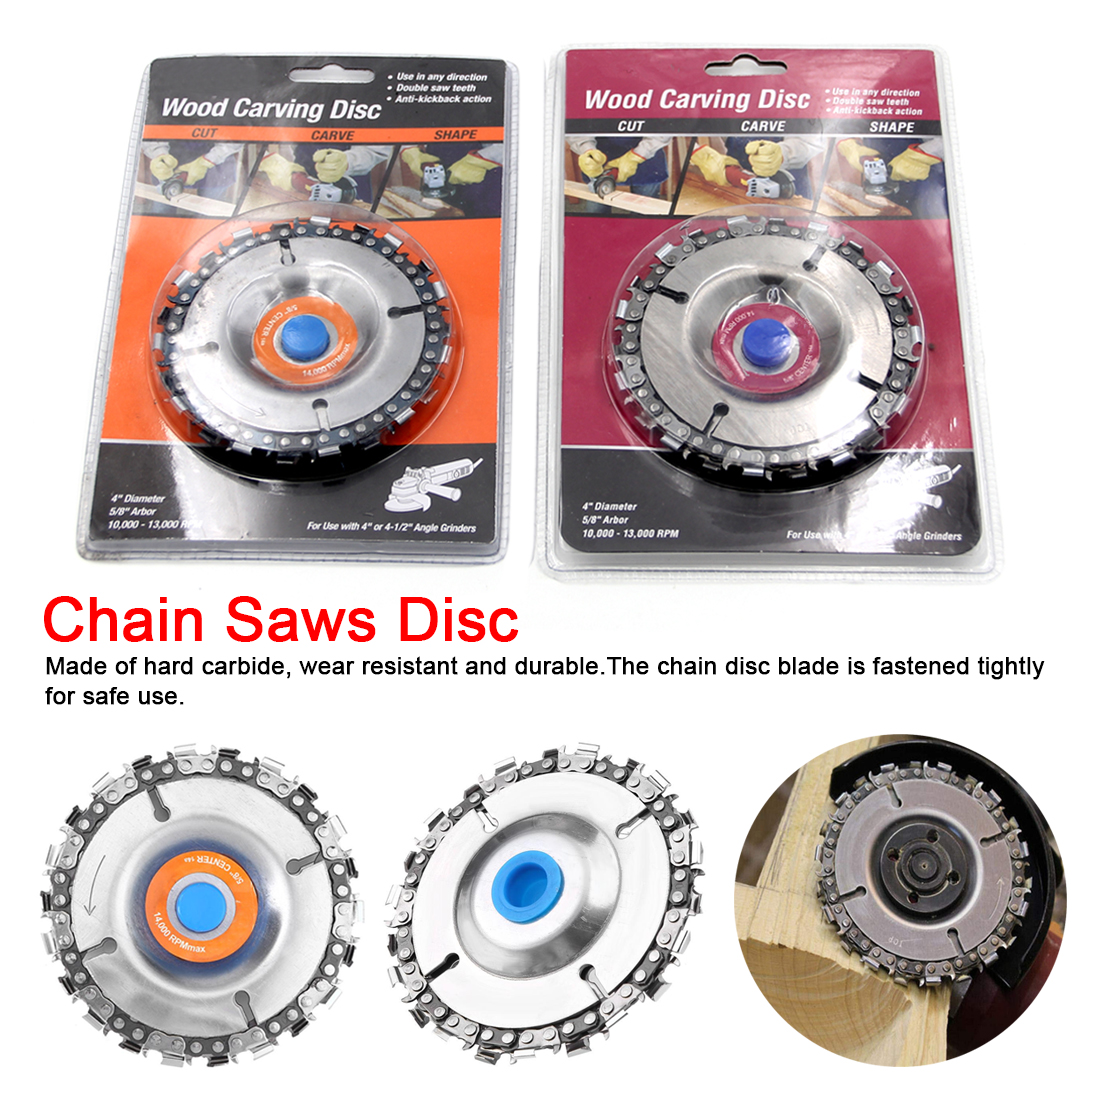 4 Inch 14 Teeth Grinder Chain Disc Cutting Disc 16mm Arbor Woodworking Carving Disc For 100/115 Angle Grinder /Circular Saw